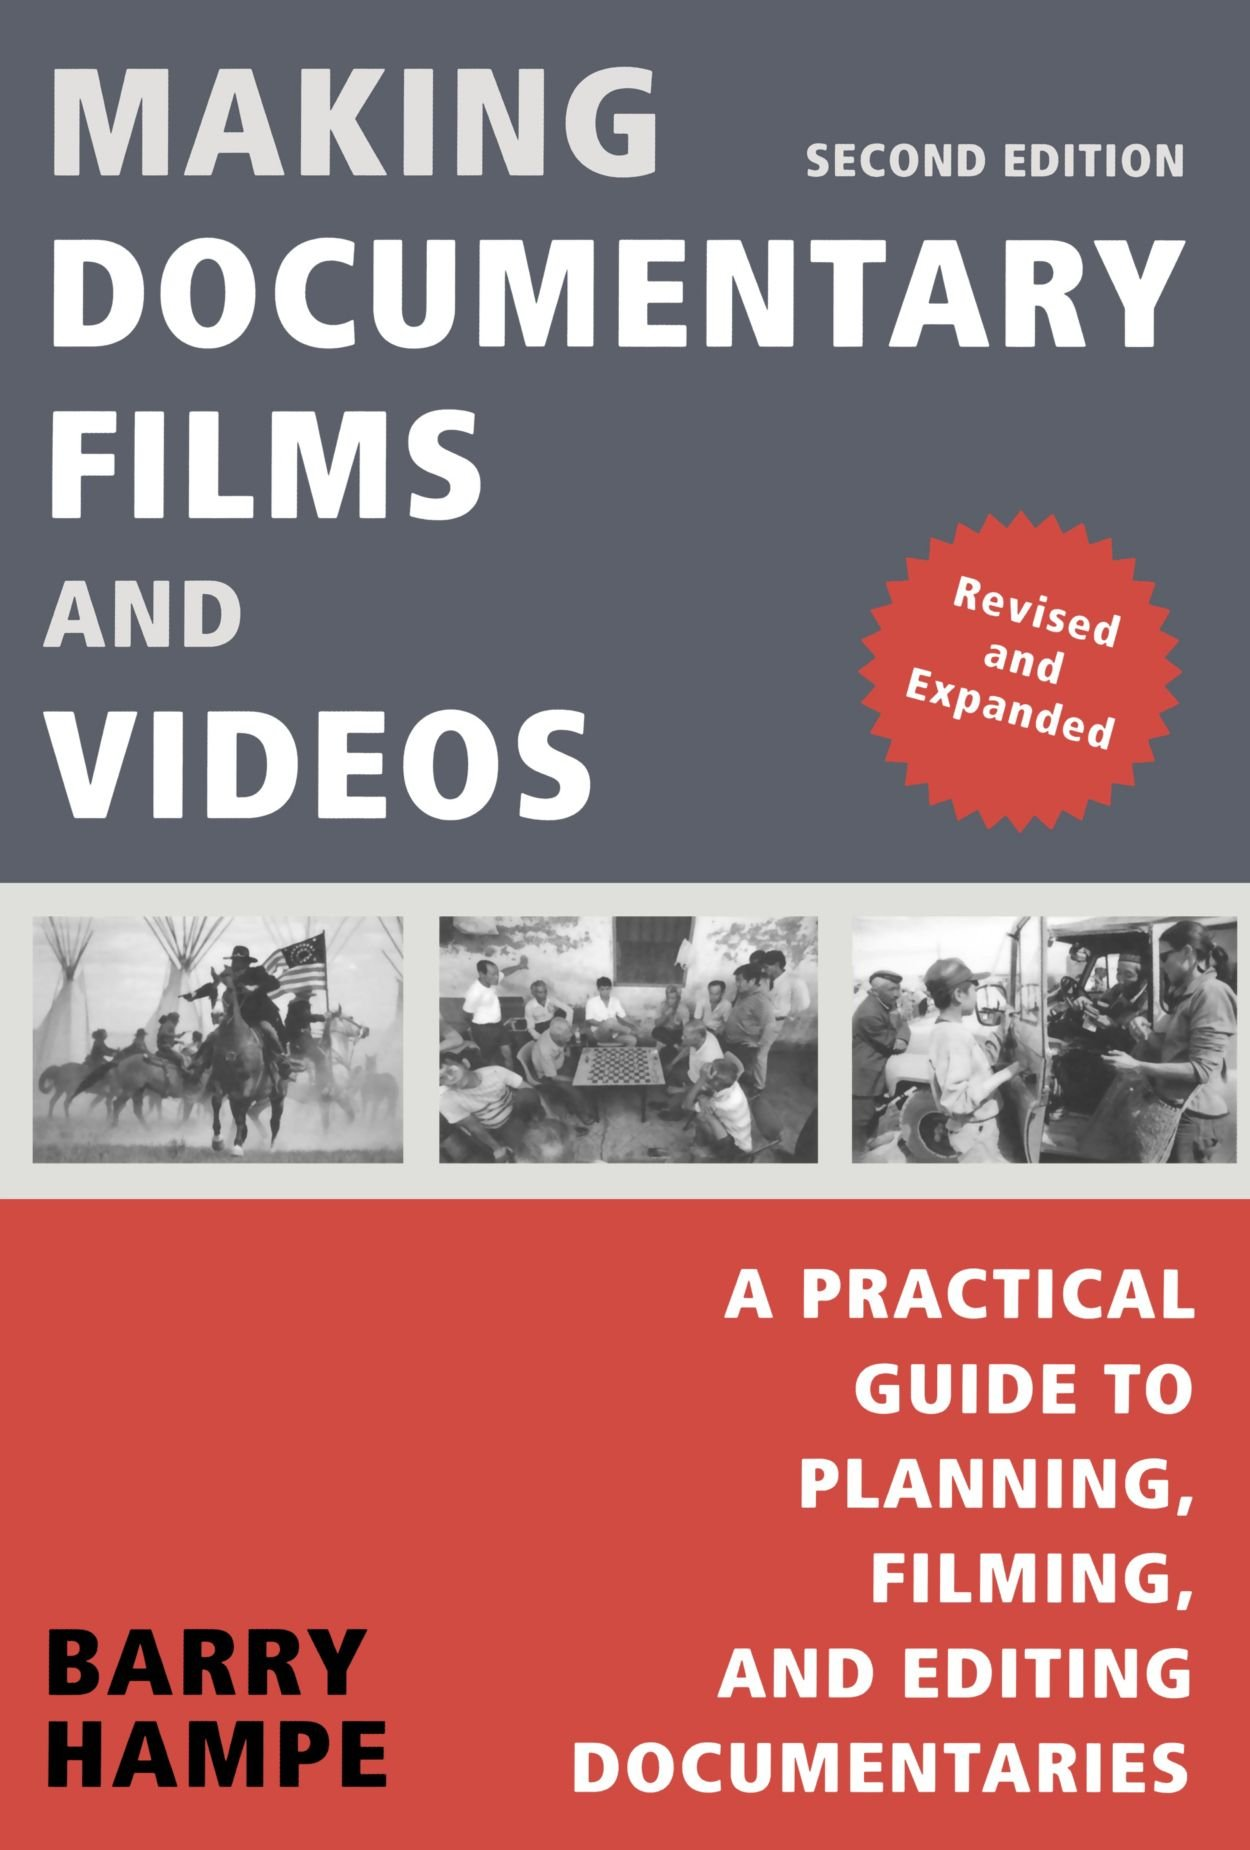 Making Documentary Films and Videos: A Practical Guide to Planning, Filming, and Editing Documentaries: Barry Hampe: 9780805081817: Amazon.com: Books